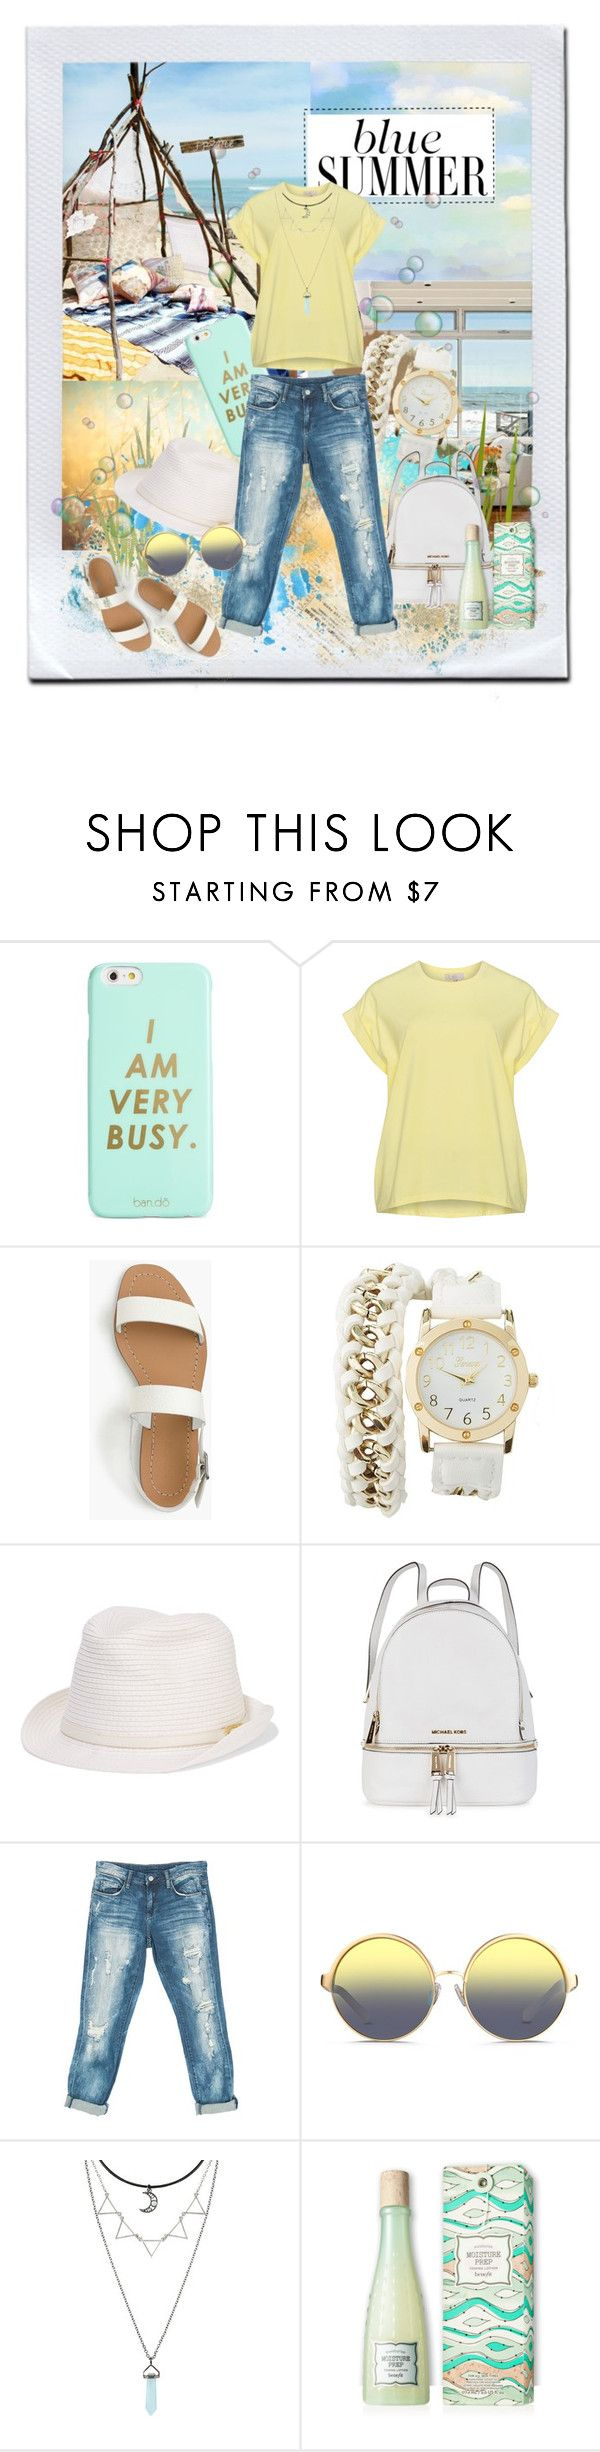 """The walk on the beach under the clear sky (Прогулка по пляжу под ясным небом)"" by kseniz13 ❤ liked on Polyvore featuring ban.do, J.Crew, Charlotte Russe, Melissa Odabash, Michael Kors, Sans Souci and Matthew Williamson"